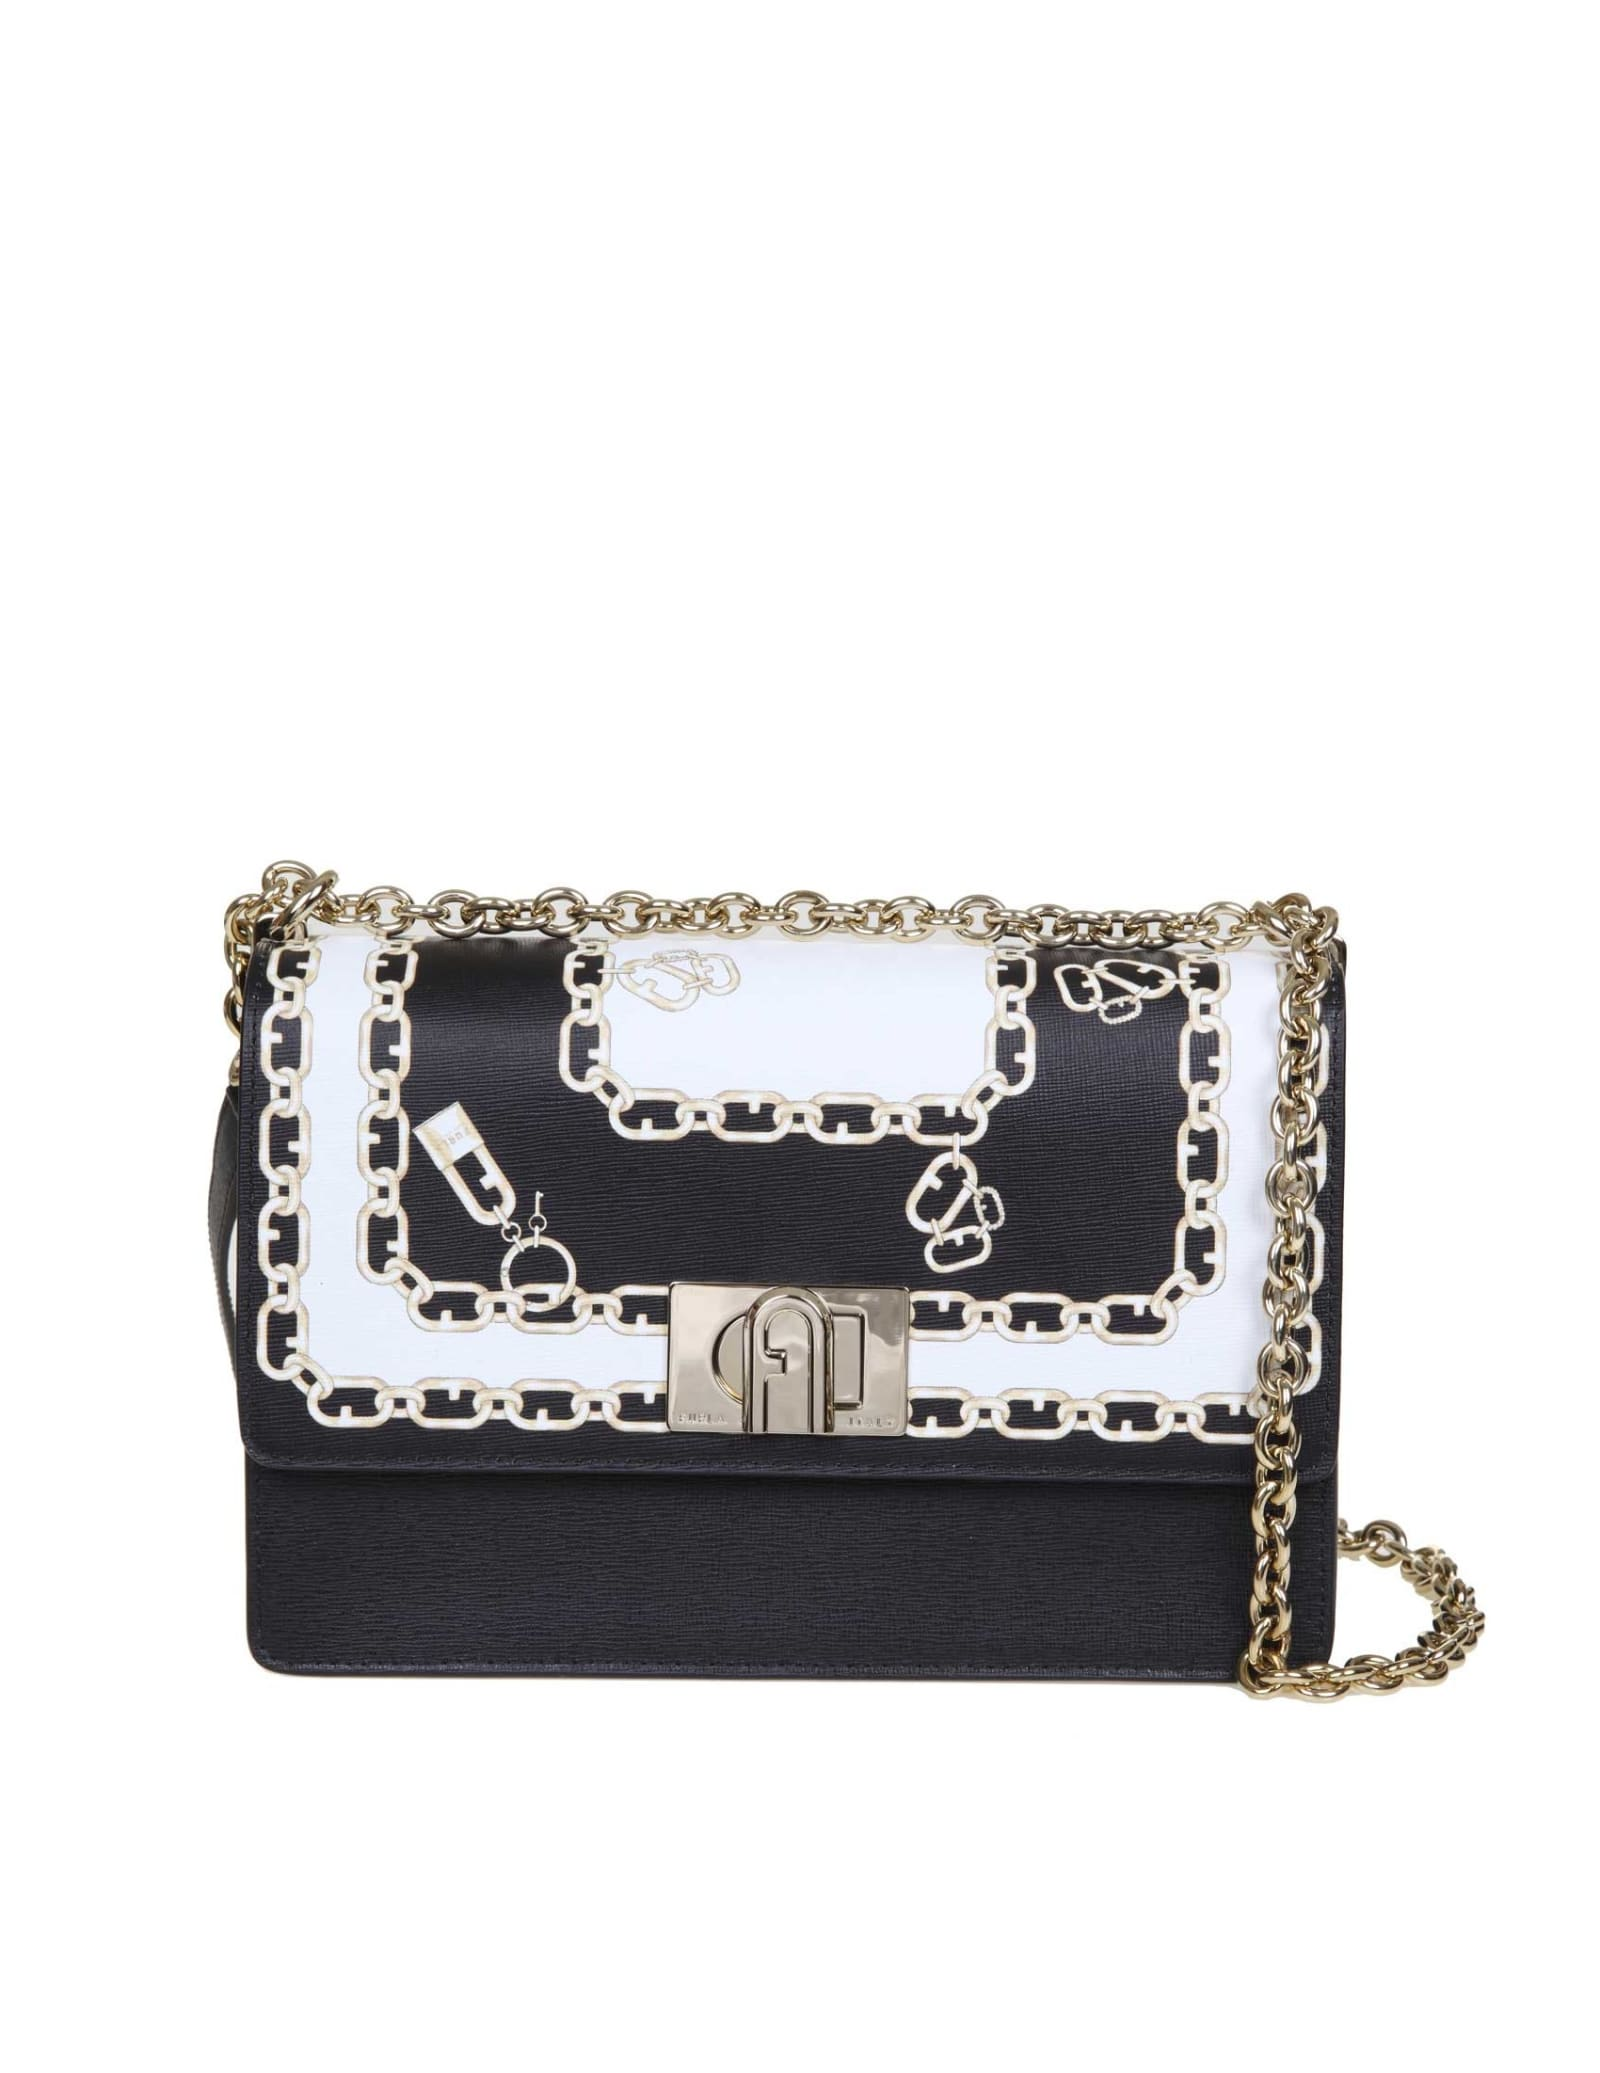 Furla 1927 S Crossbody Bag In Leather With Print